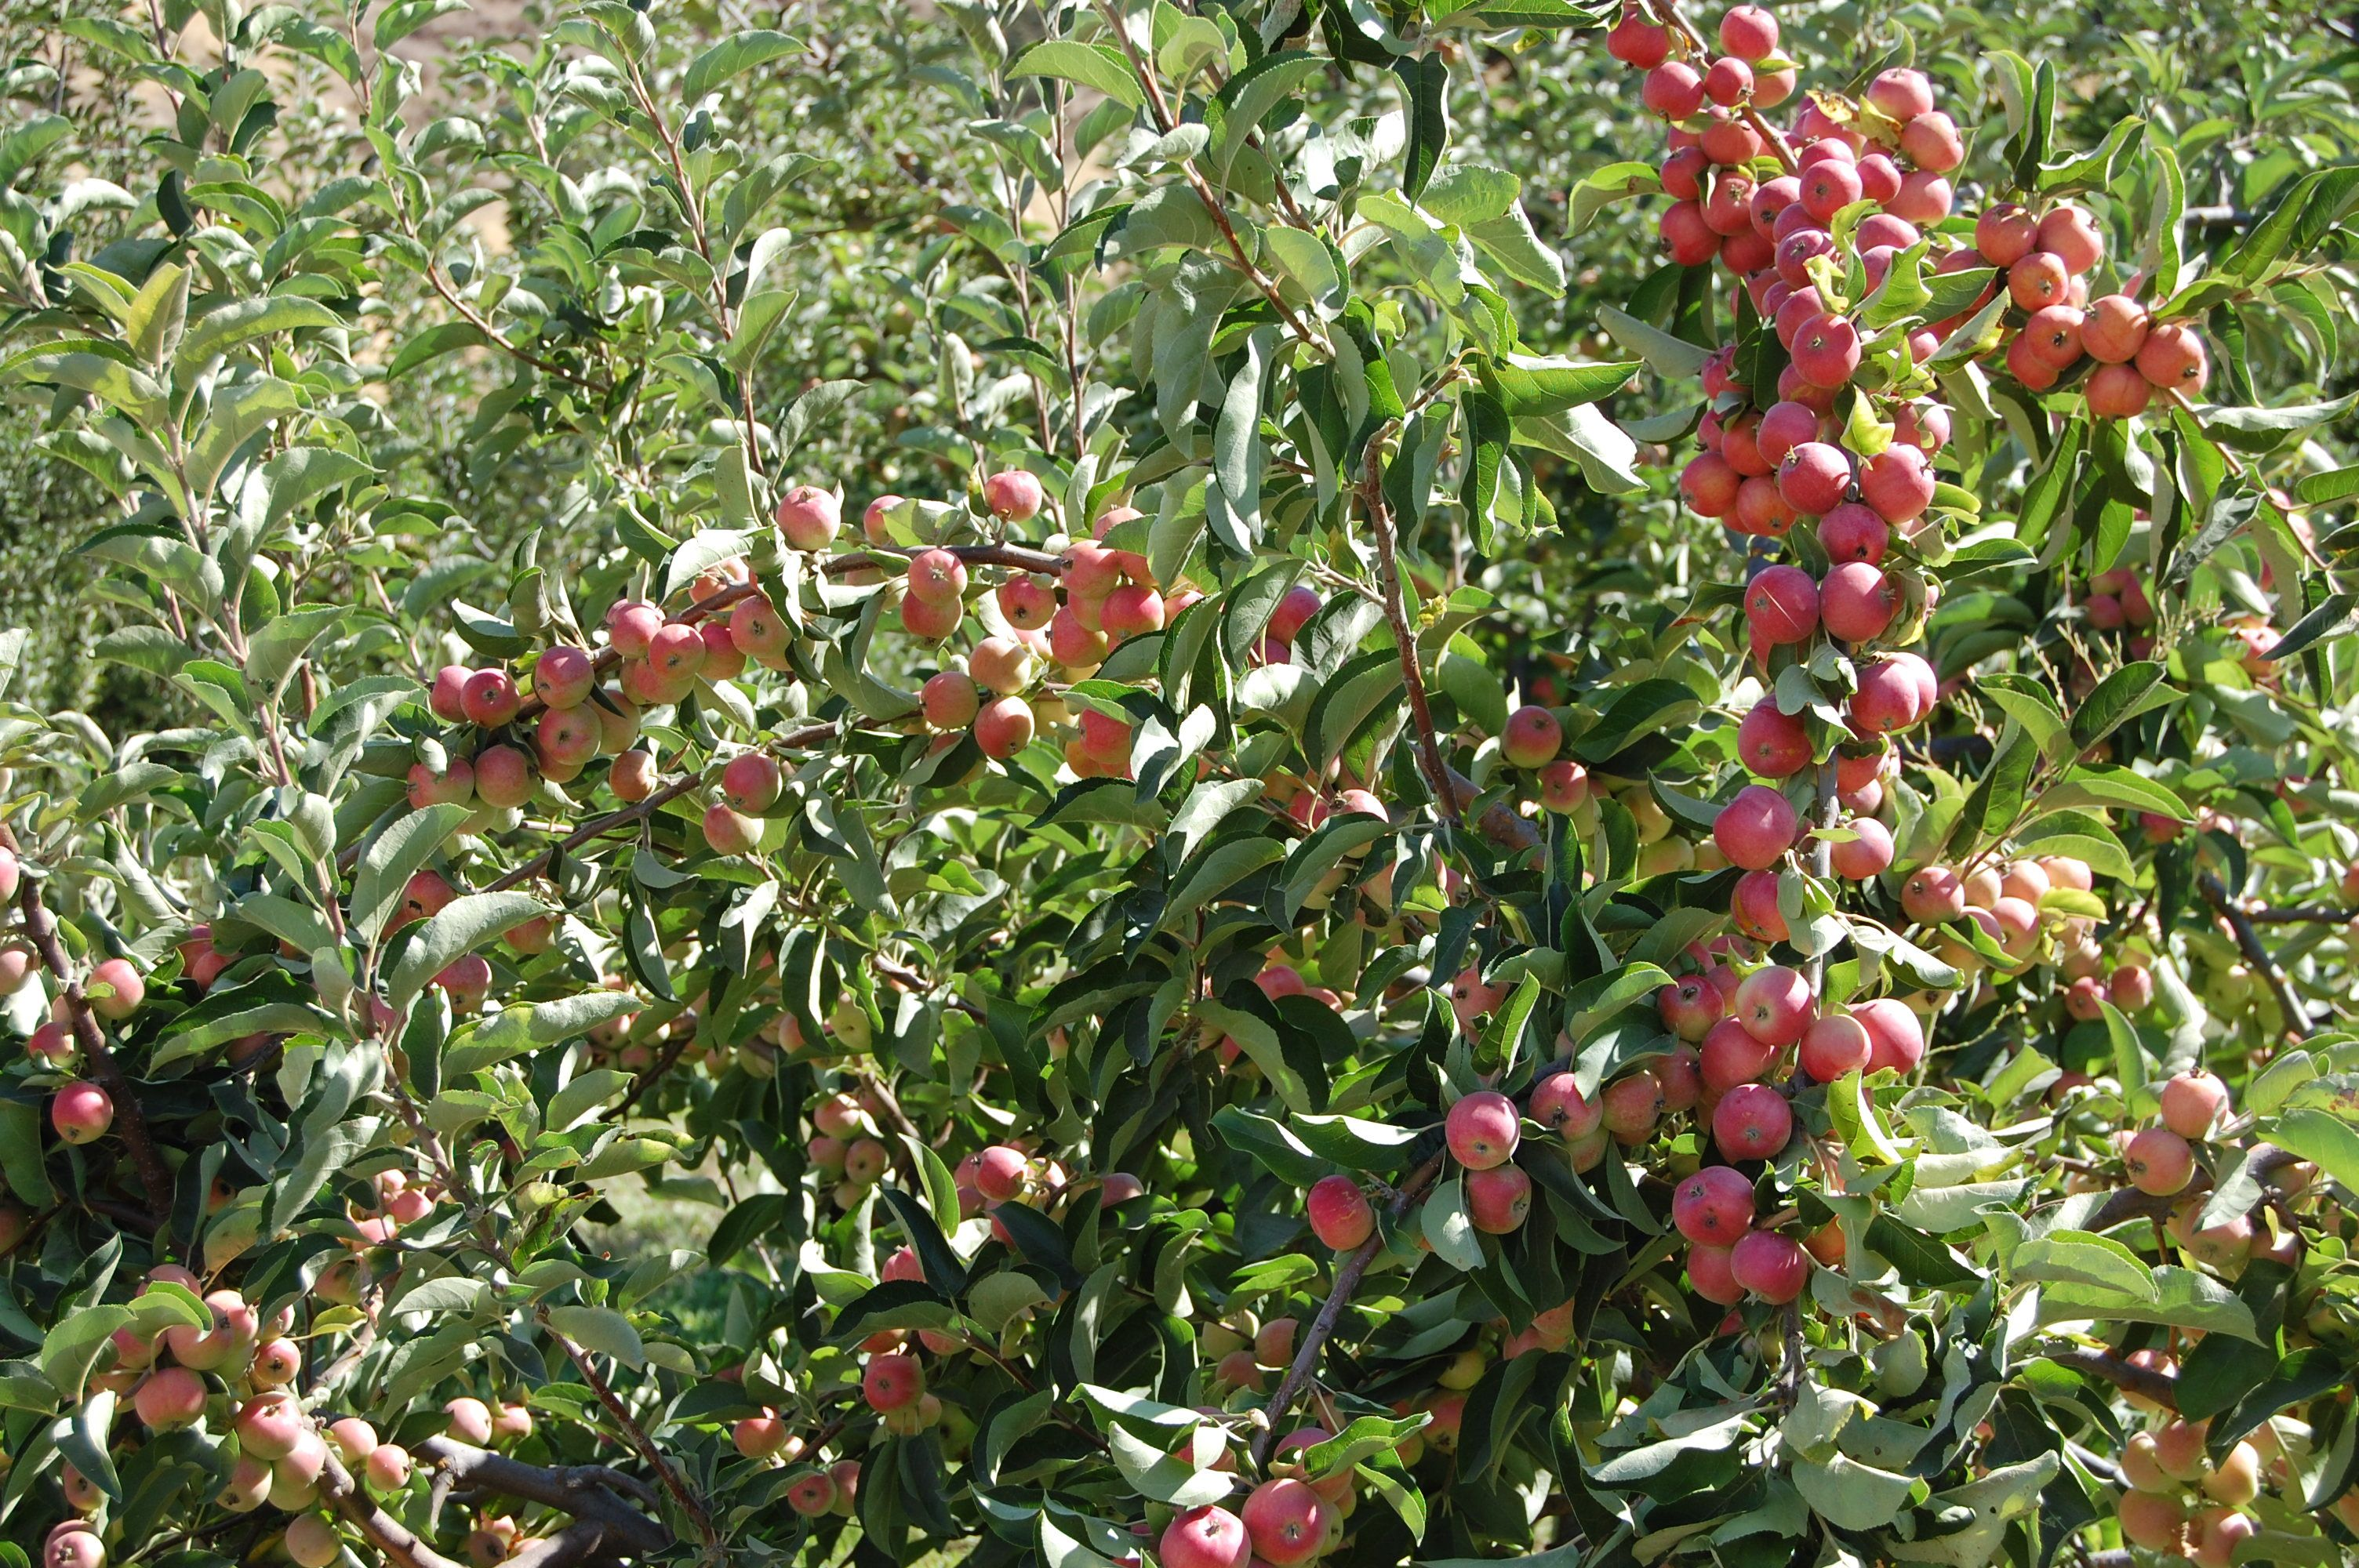 Heirloom Fruit Trees For Home Farm Trees Of Antiquity Rooted Organic Fruit Tree Nursery Fruit Trees Growing Food